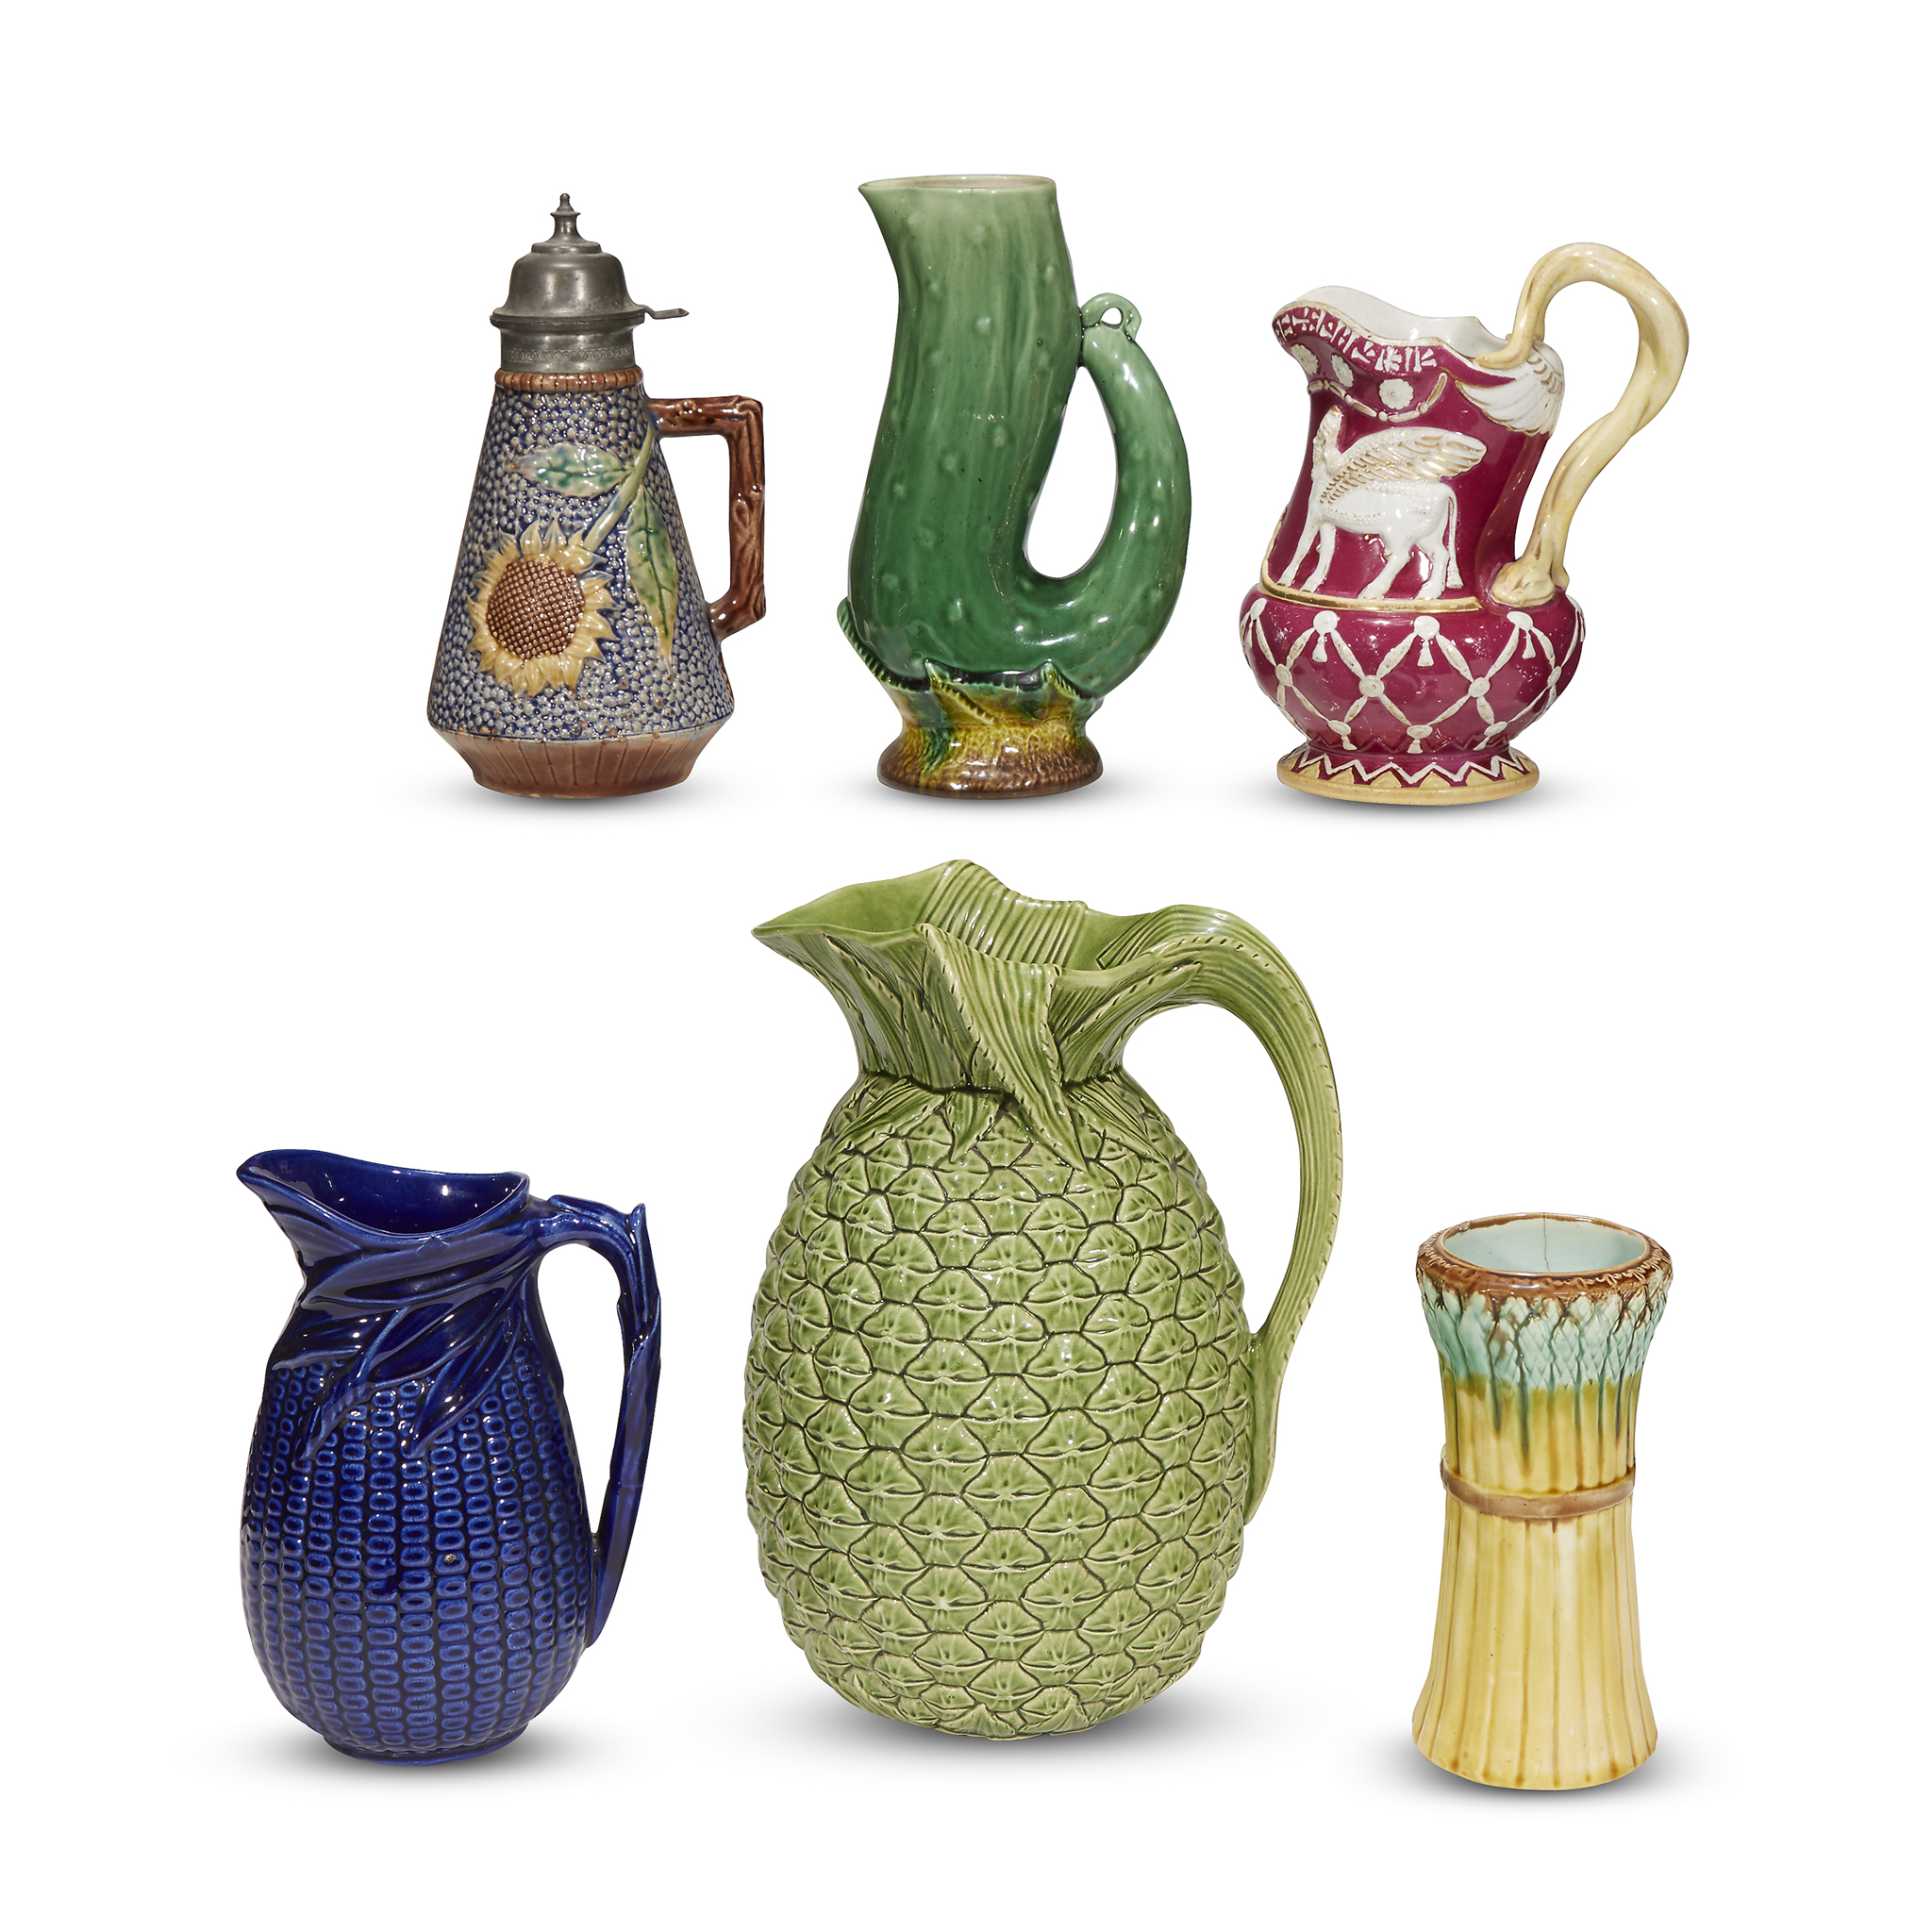 Pitchers Jugs A Group Of Five Assorted Majolica Pitchers And Jugs Last Quarter 19th Century